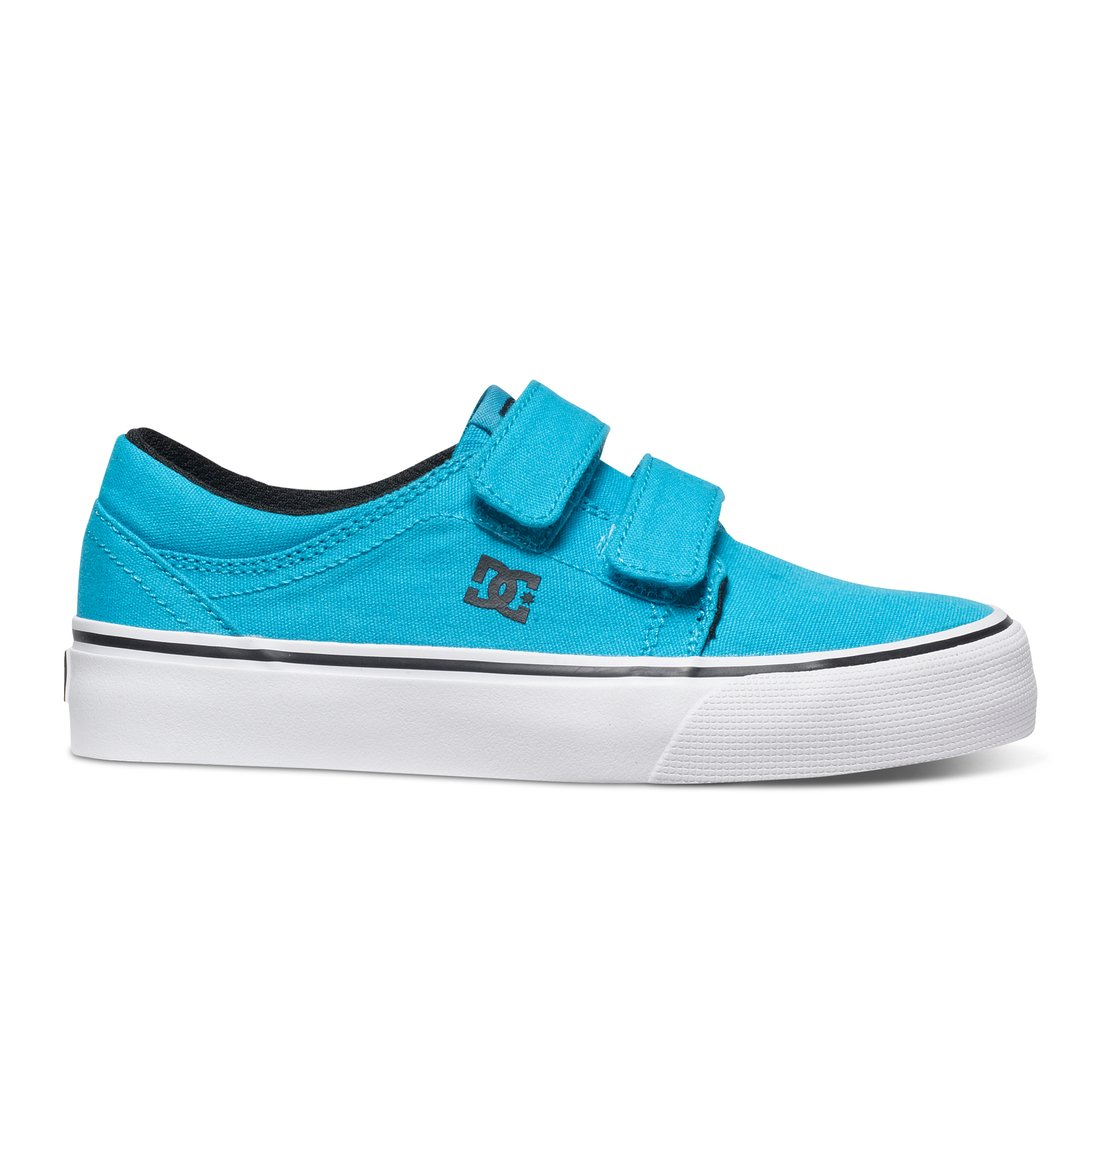 Trase V - Low-Top Shoes - Dcshoes<br>